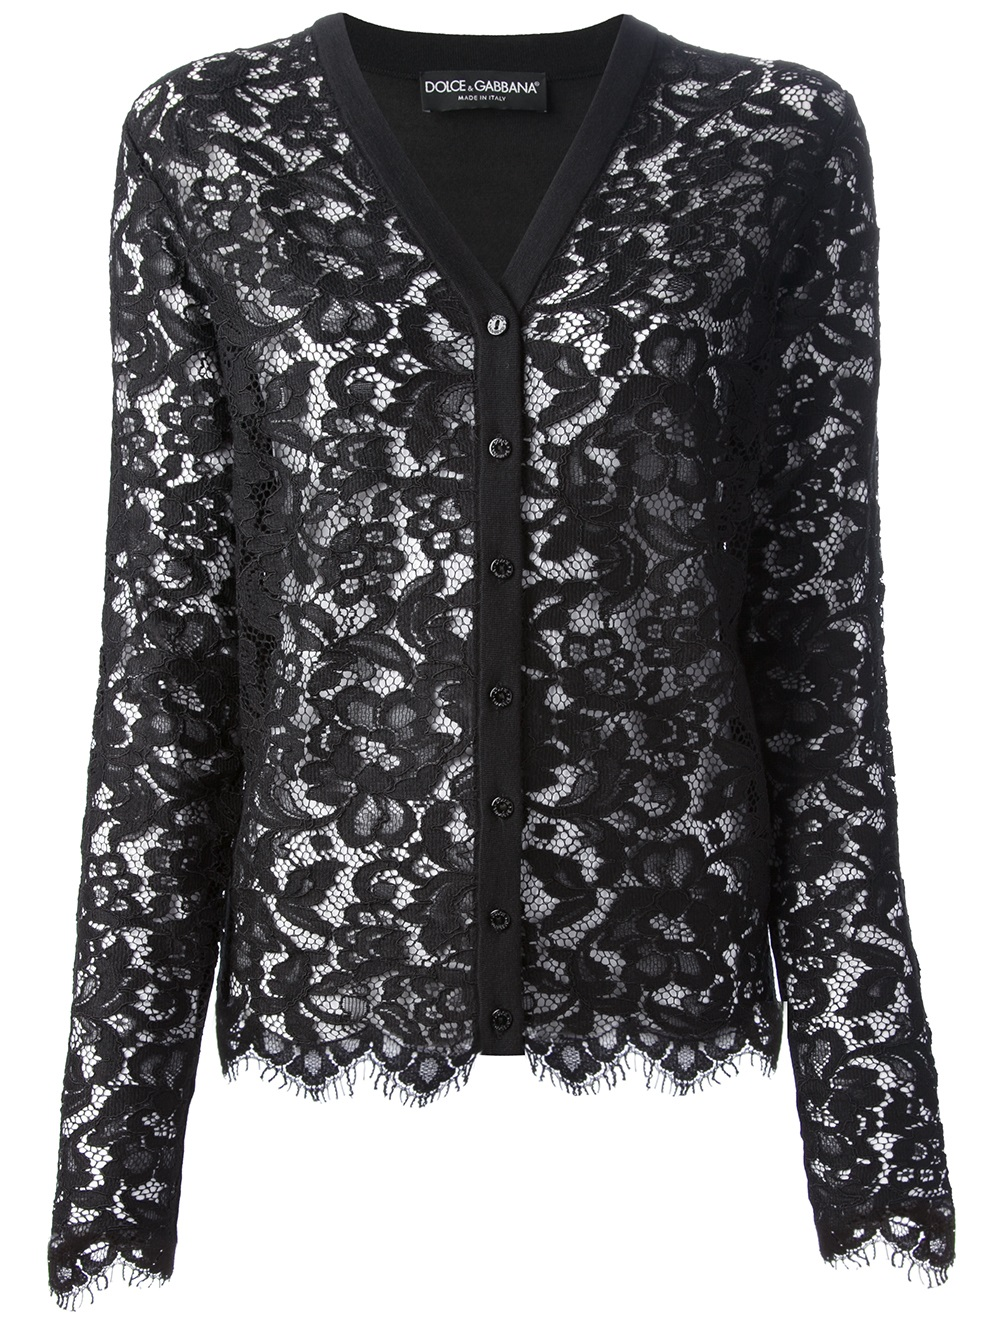 Dolce & gabbana Lace Cardigan in Black | Lyst